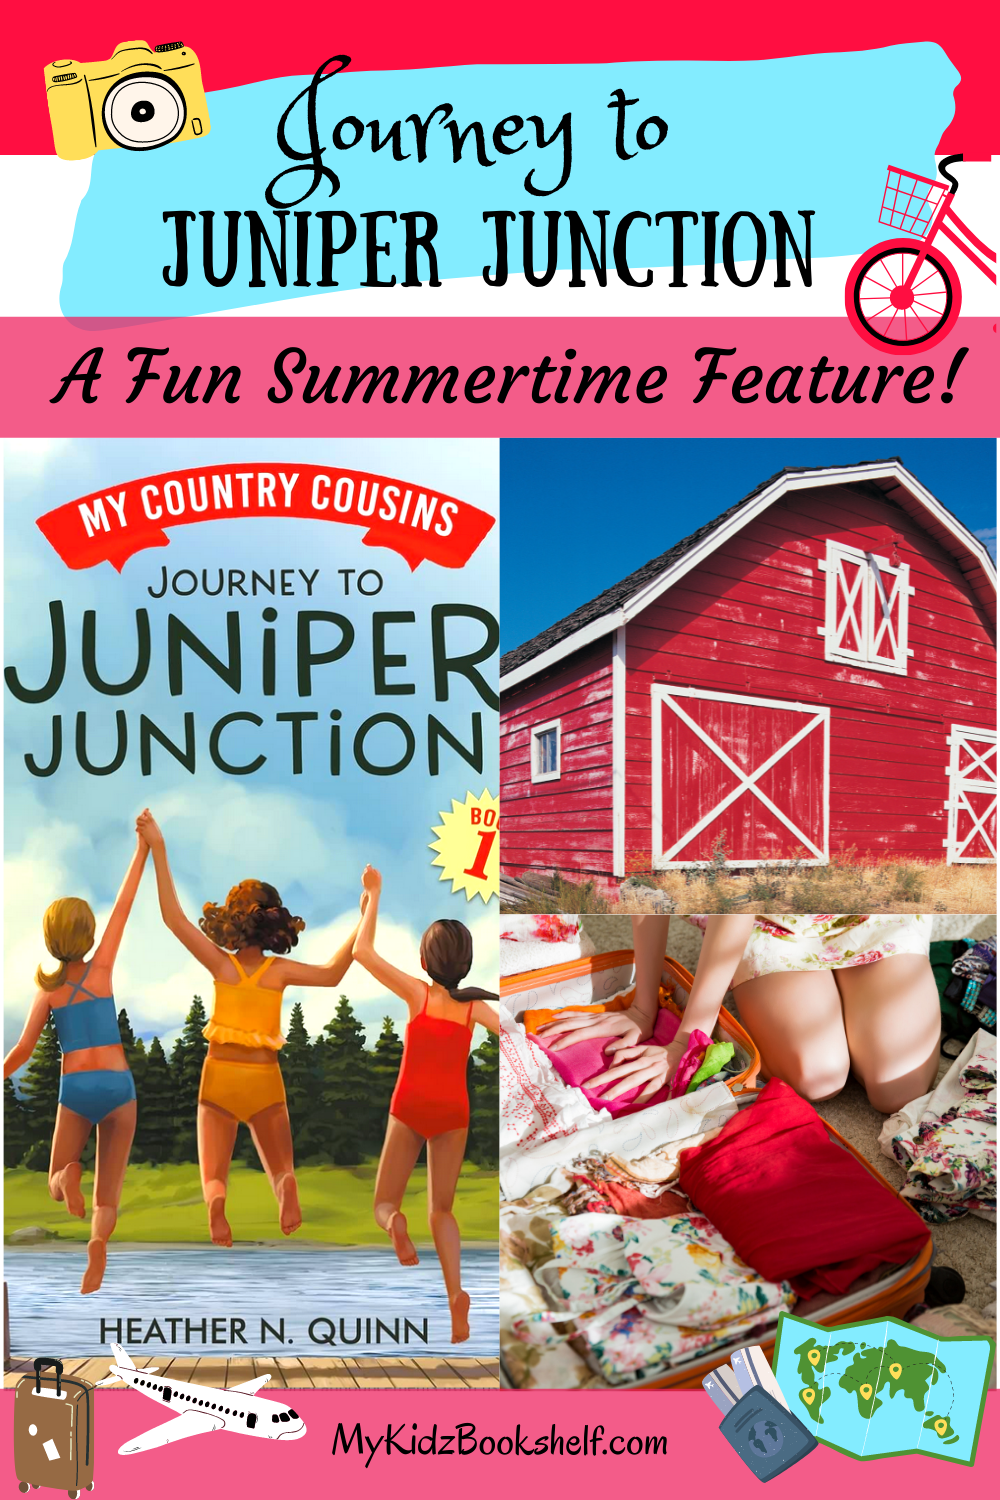 Journey to Juniper Junction Pinterest pin shows book cover, barn and suitcase